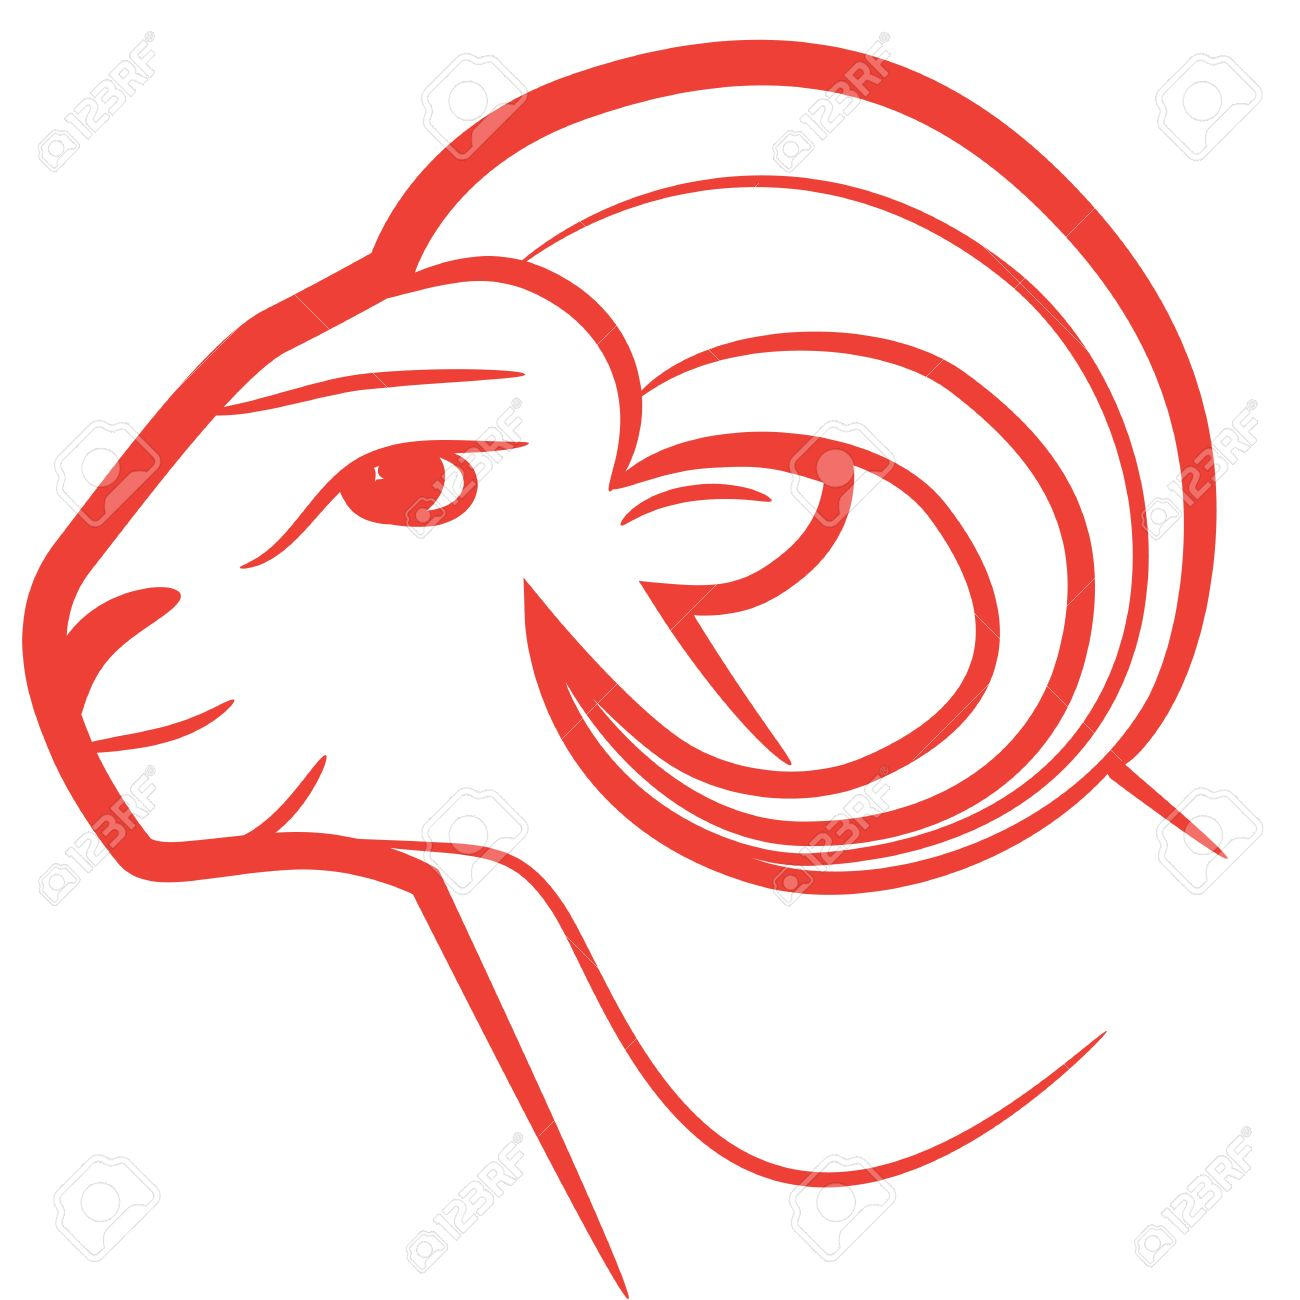 Zodiac Sign Aries Logo Icon Sketch Style Tattoo Sheep Isolated On White Background Stock